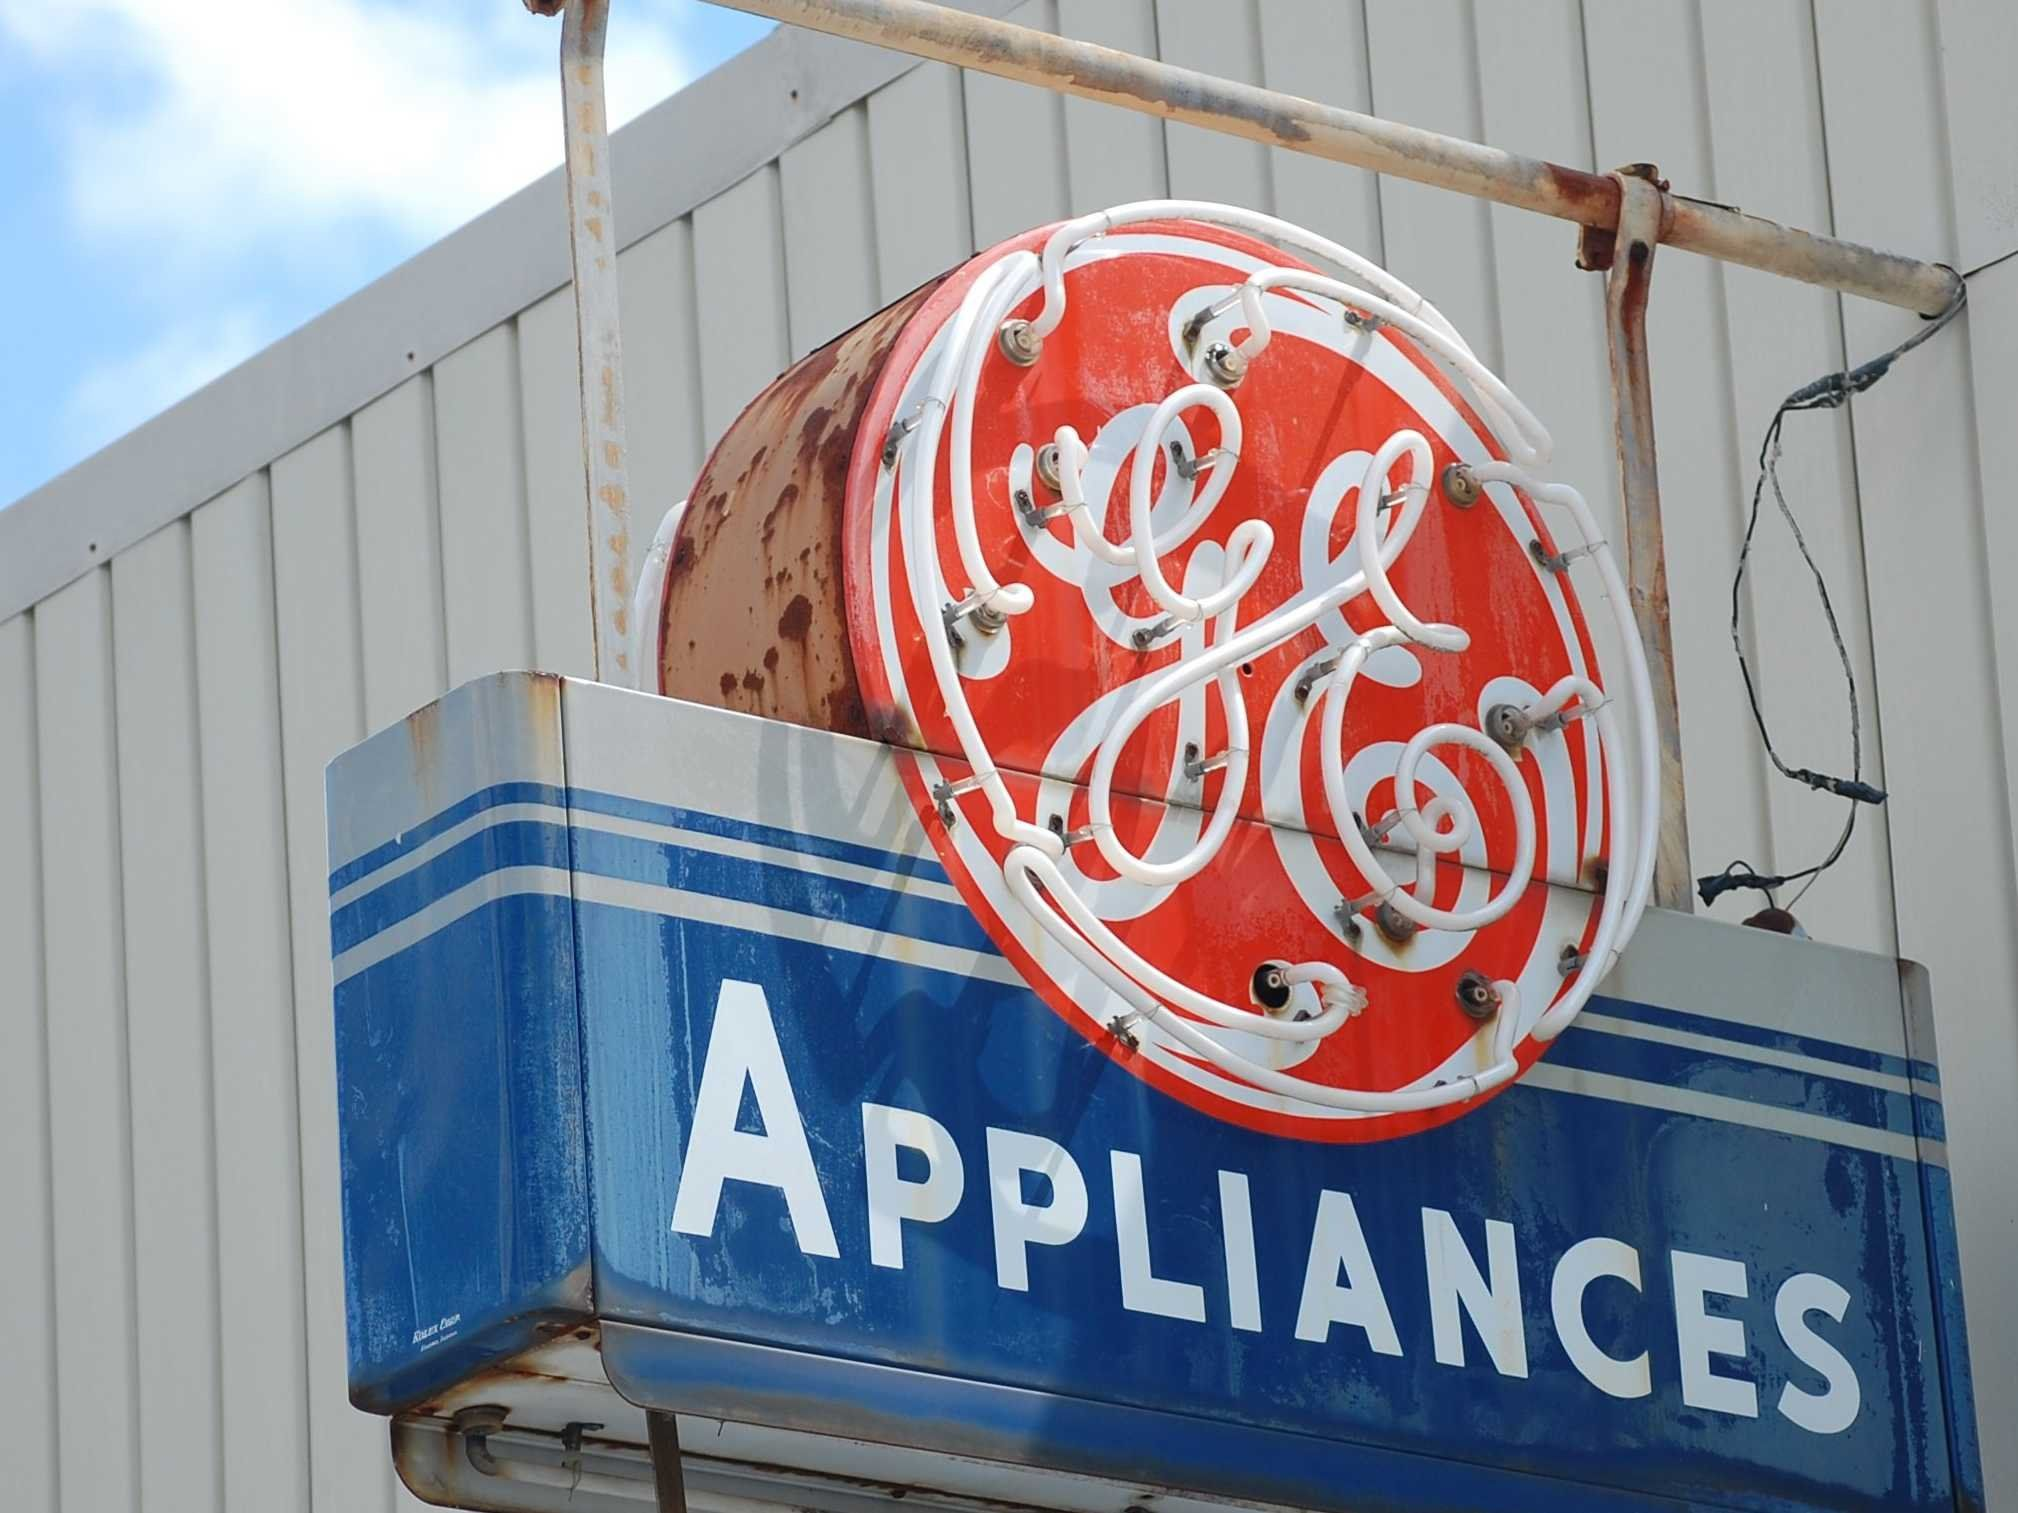 GE is getting booted from the Dow Jones industrial average: Here are the members of the original 1896 index (GE)